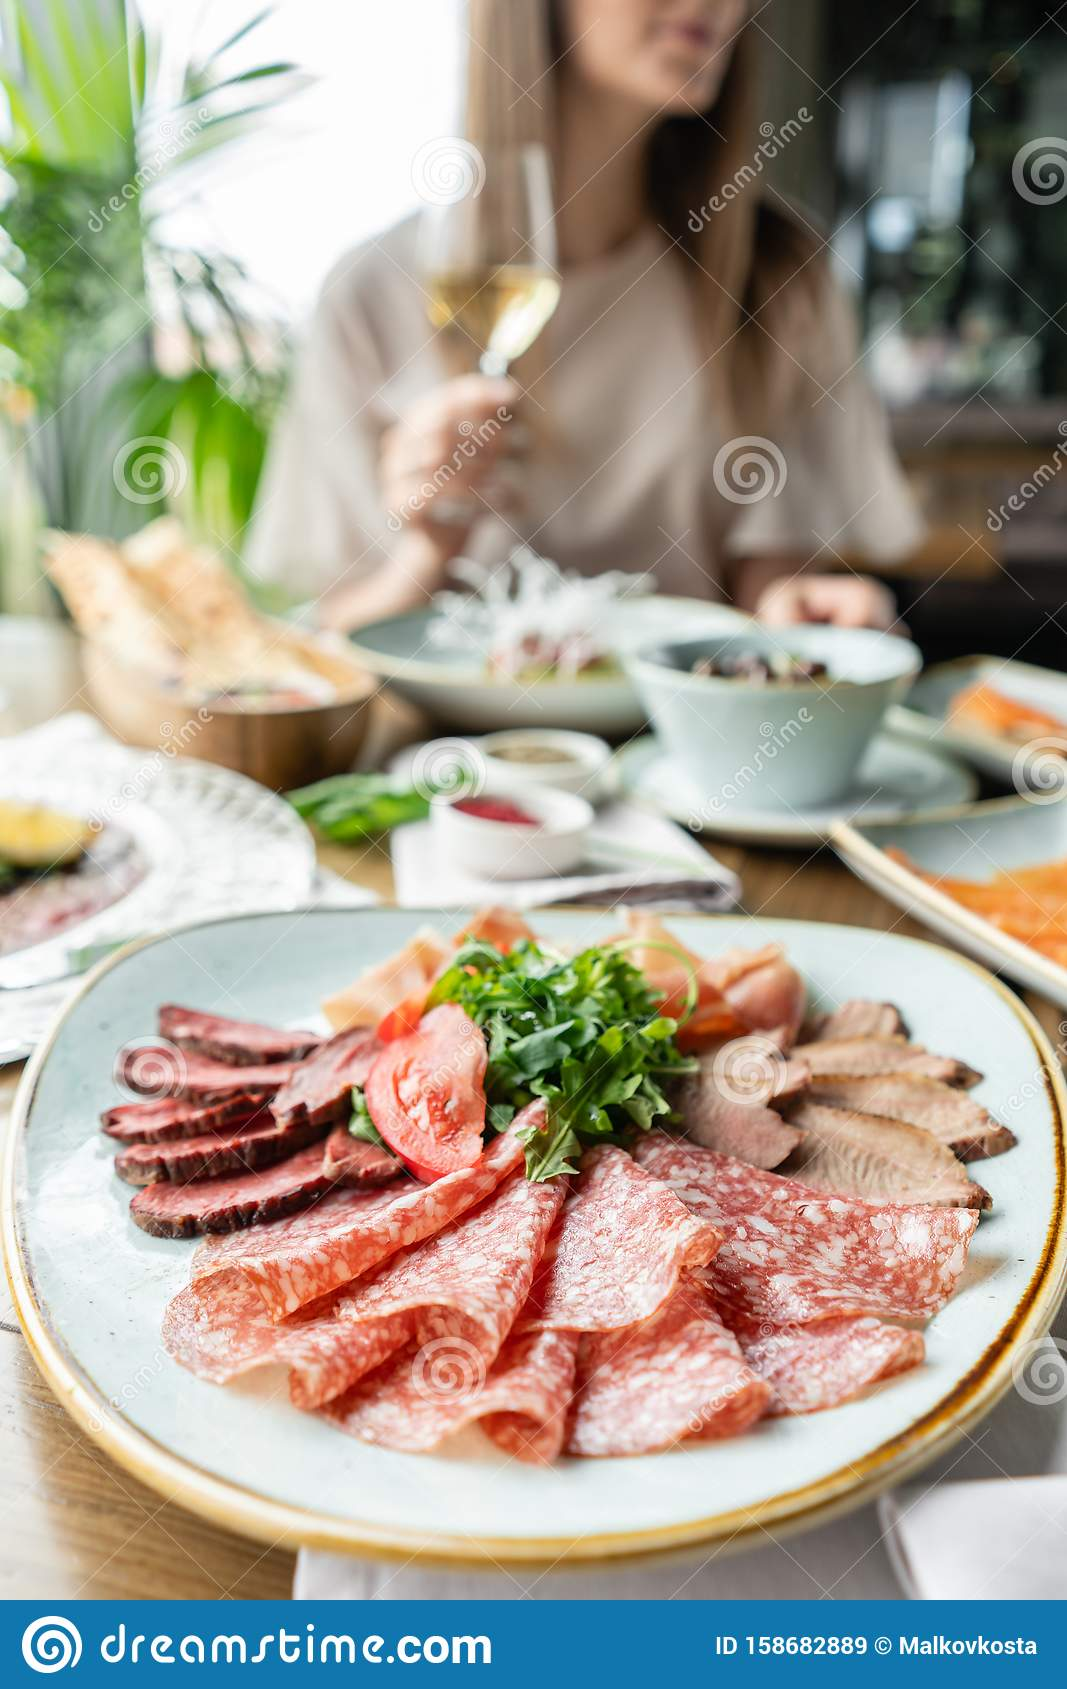 Closeup antipasti, salami, meat plate in the restaurant. Variety of dishes on the table. Italian cuisine